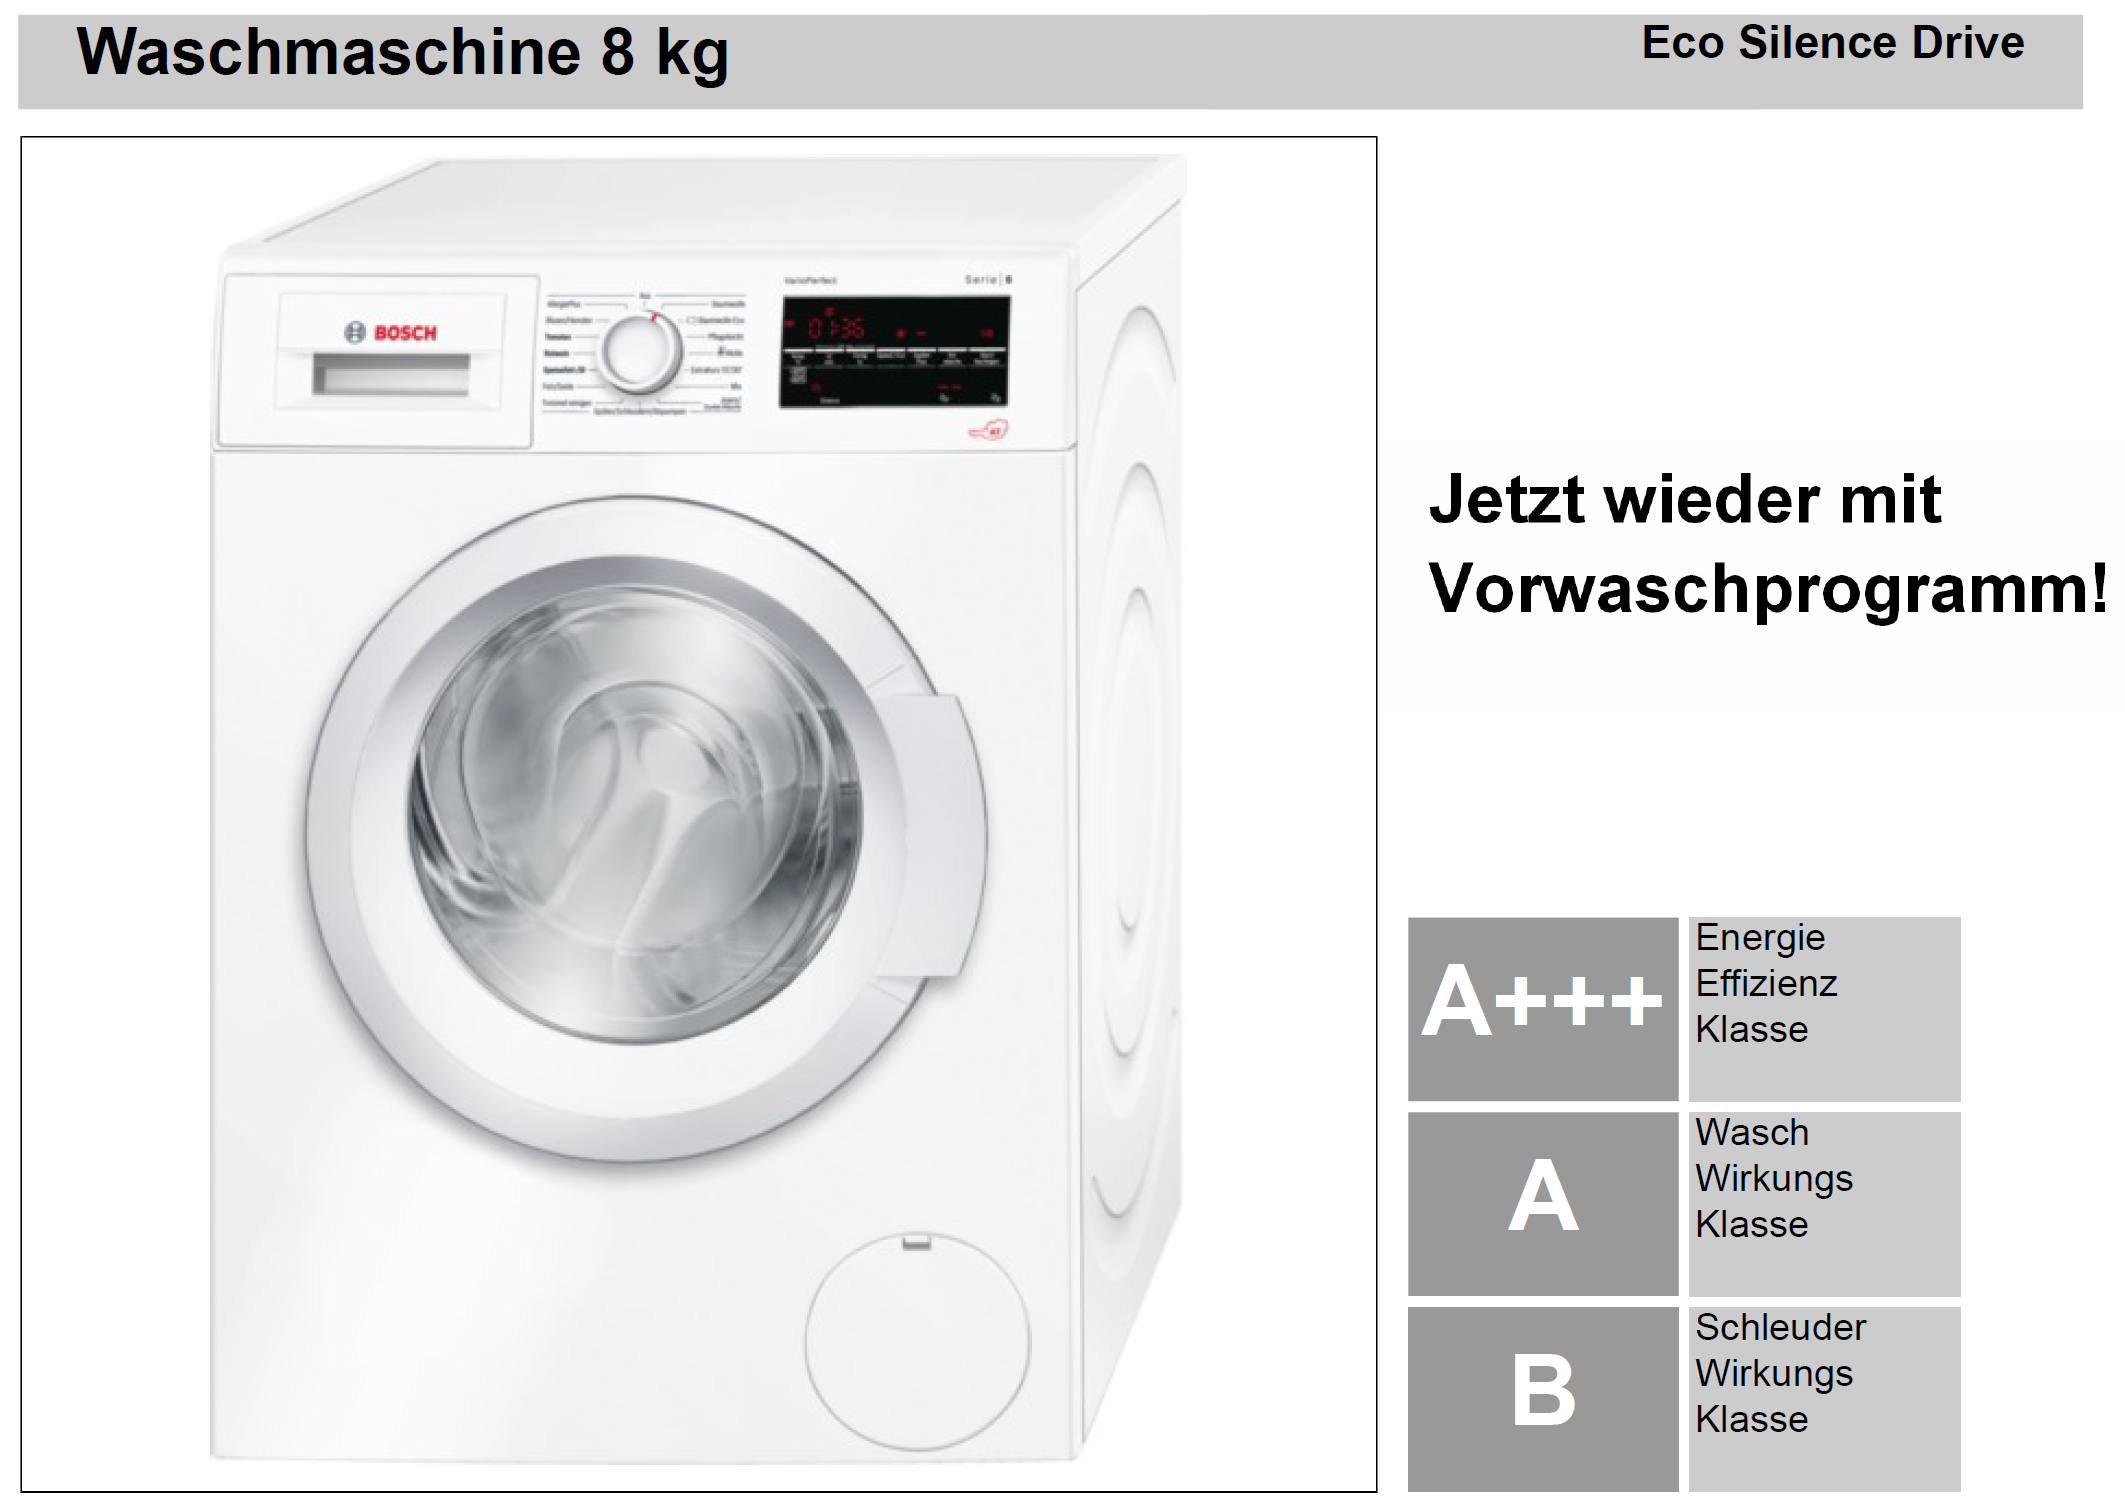 bosch waschmaschine 8kg plan work elektrotechnik gmbh elektroinstallationen mondsee. Black Bedroom Furniture Sets. Home Design Ideas